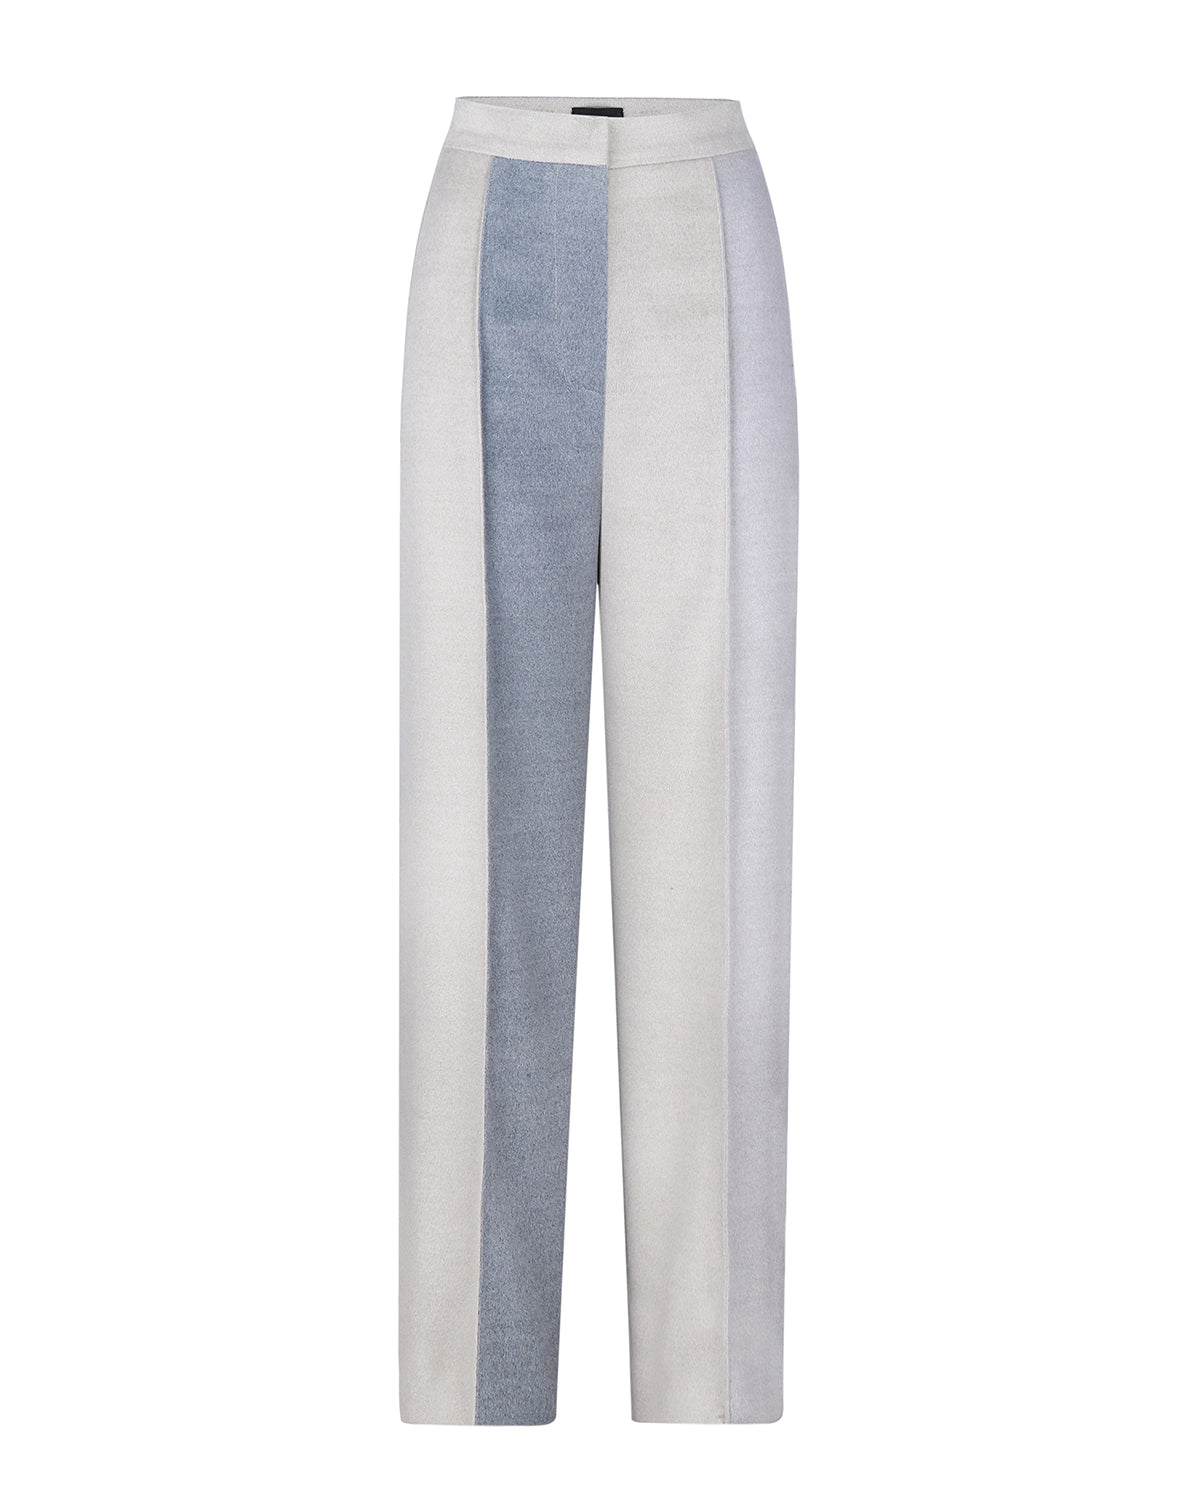 Paneled trousers